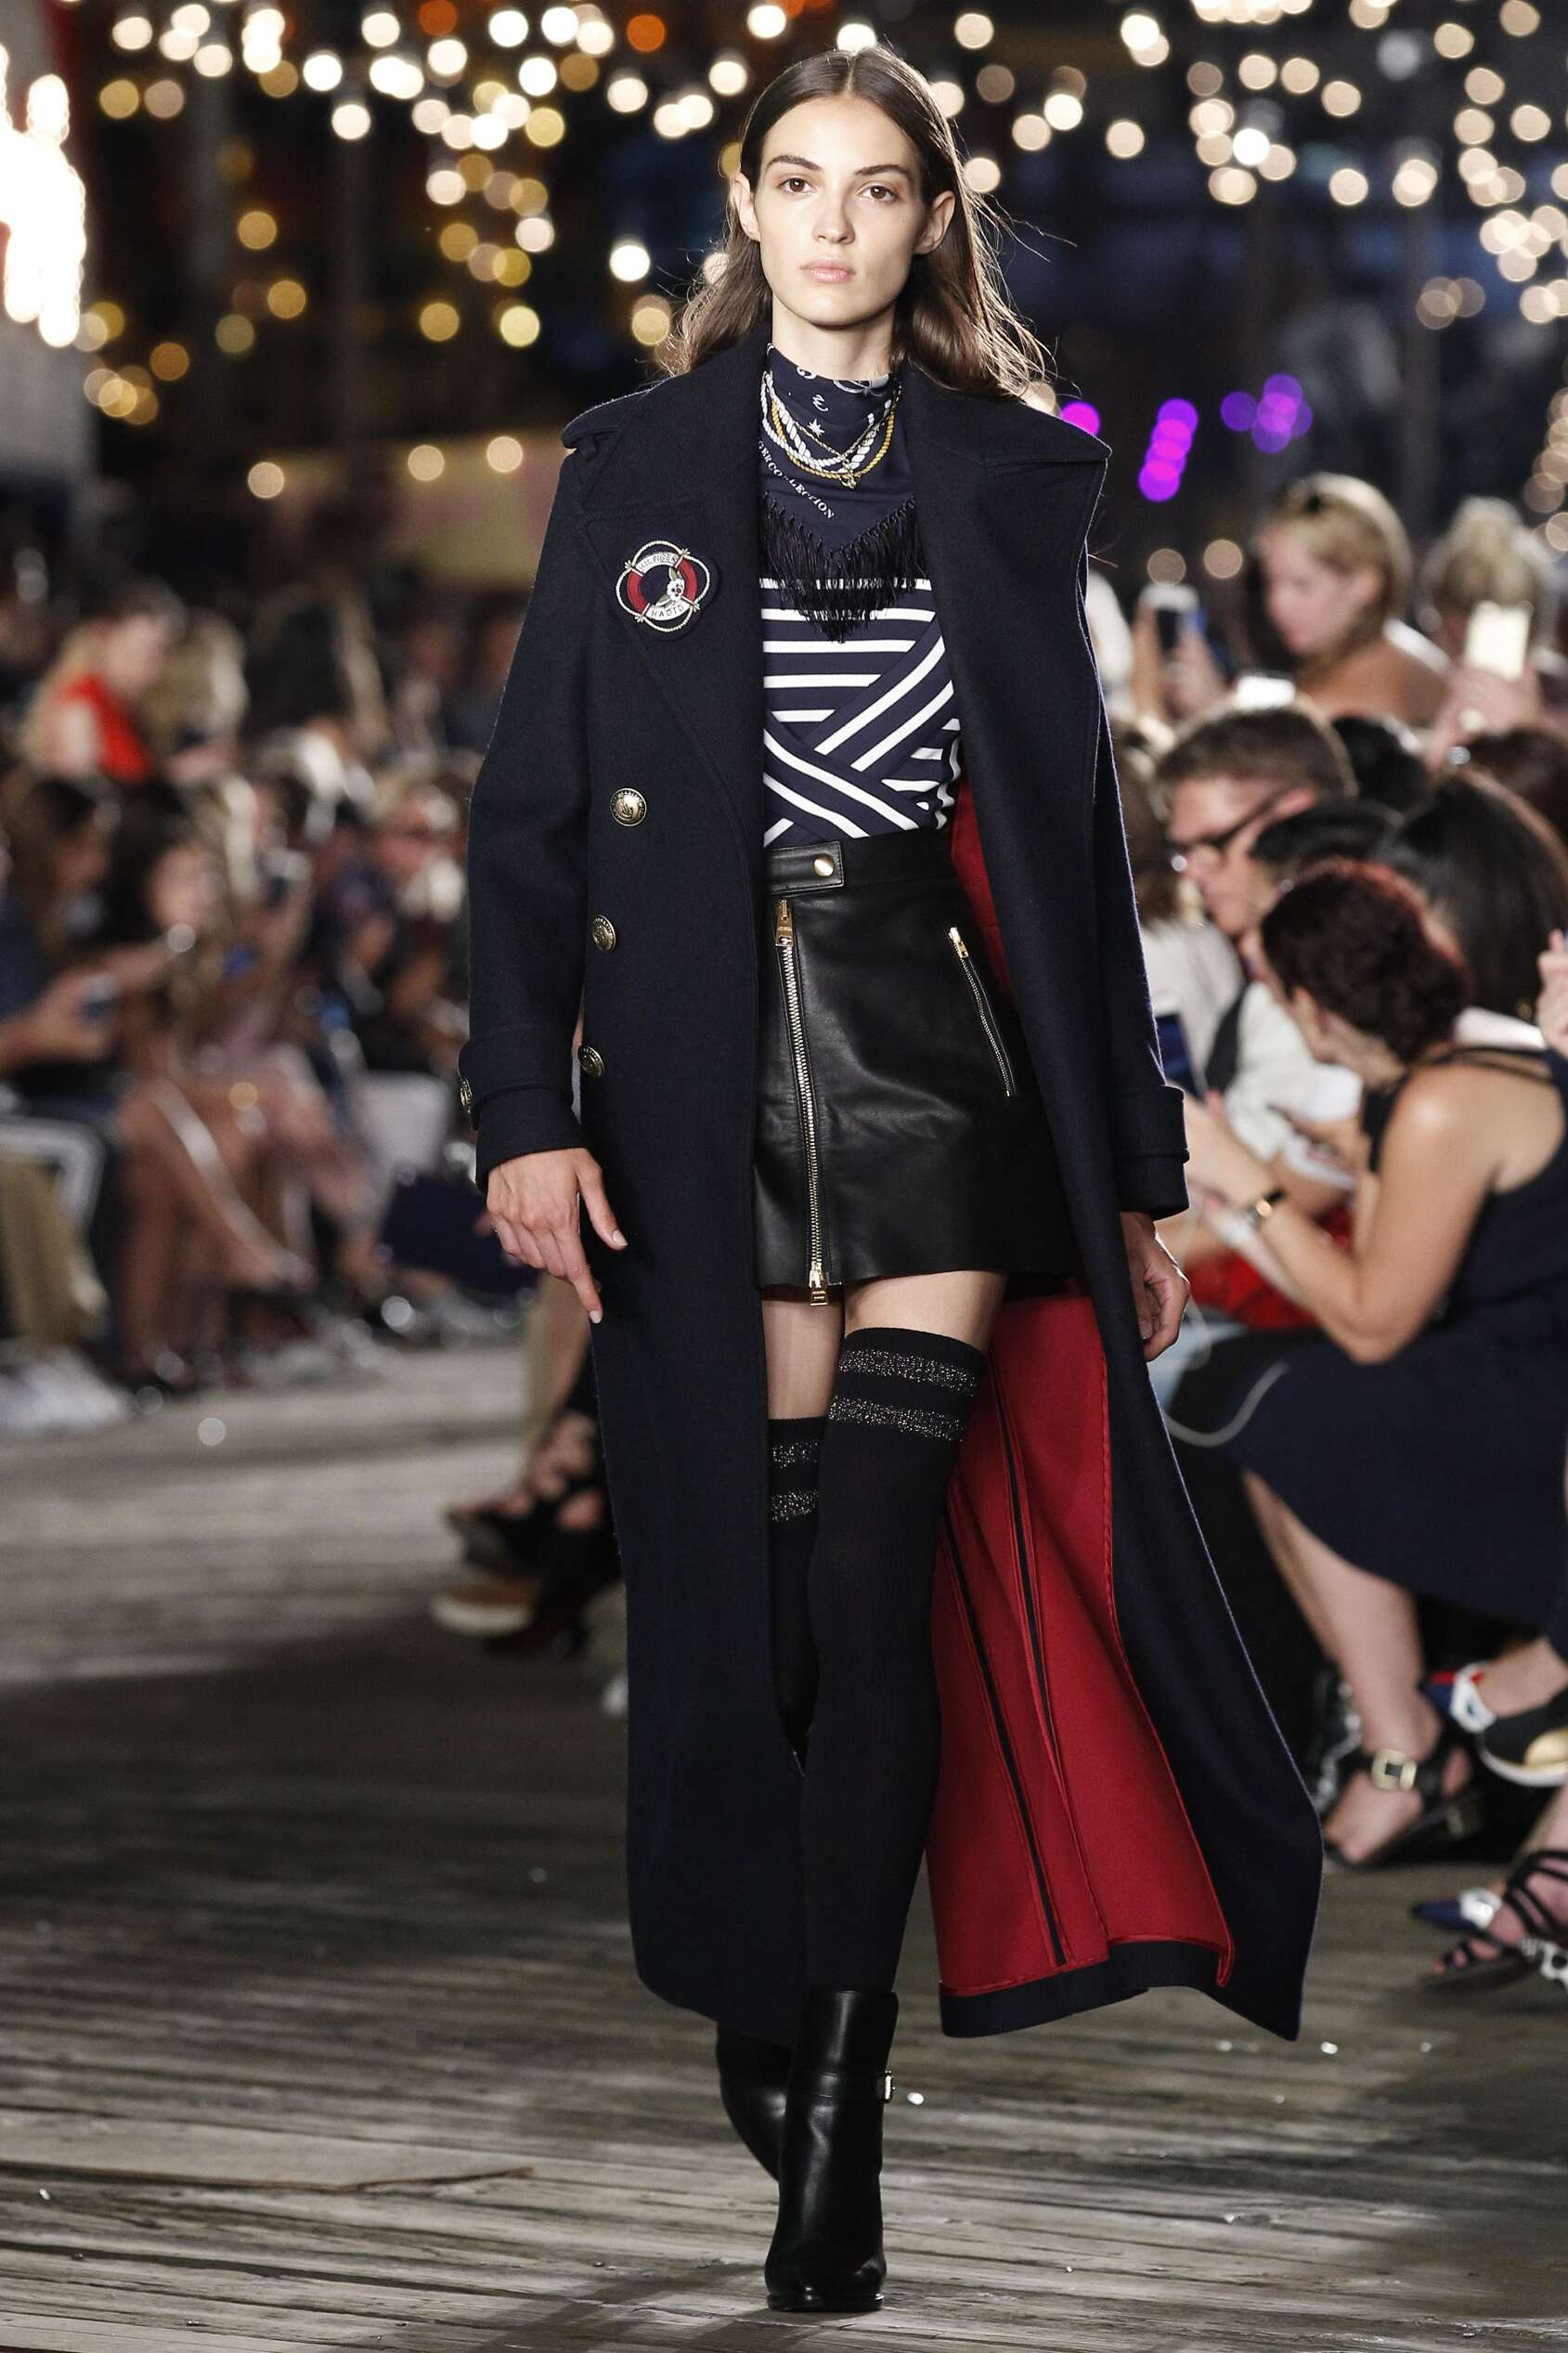 e0b1d3f5 TOMMY HILFIGER FALL WINTER 2016-17 WOMEN'S COLLECTION | The Skinny Beep